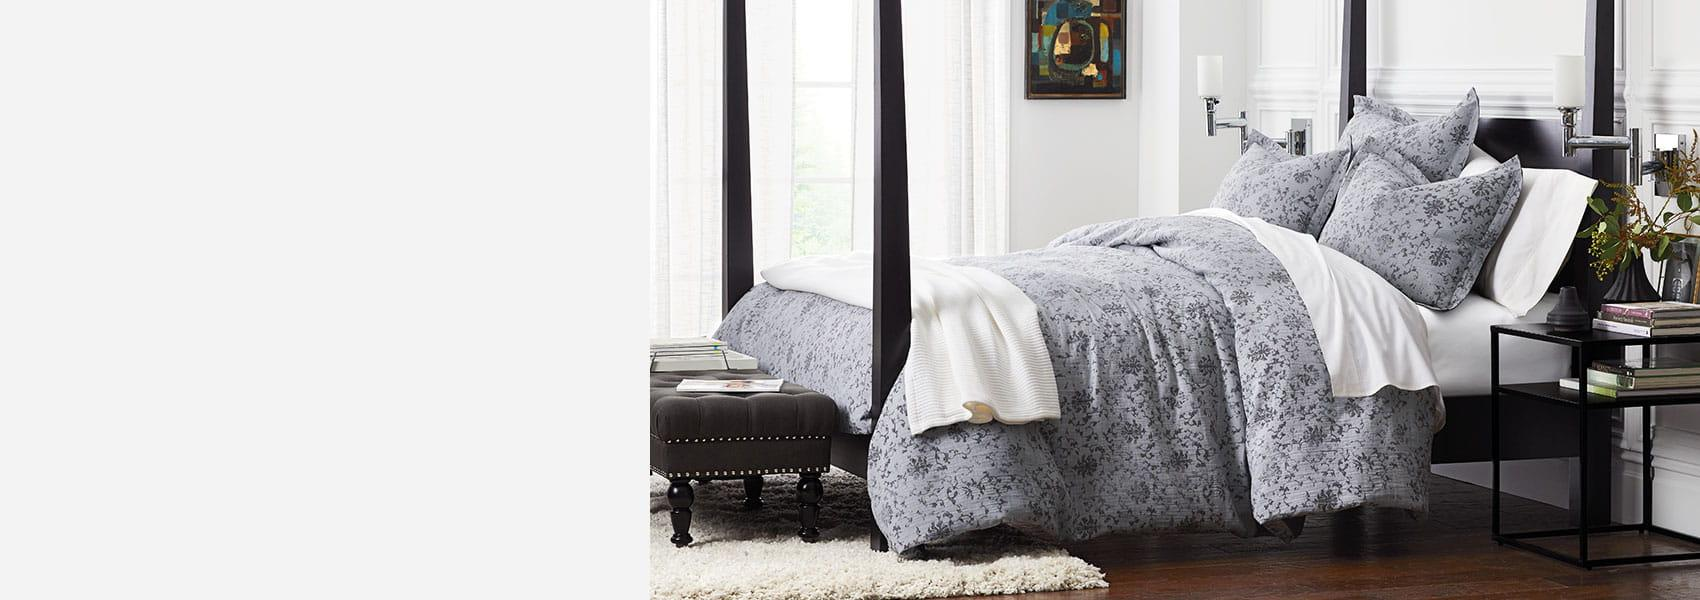 Shop Fashion Bedding